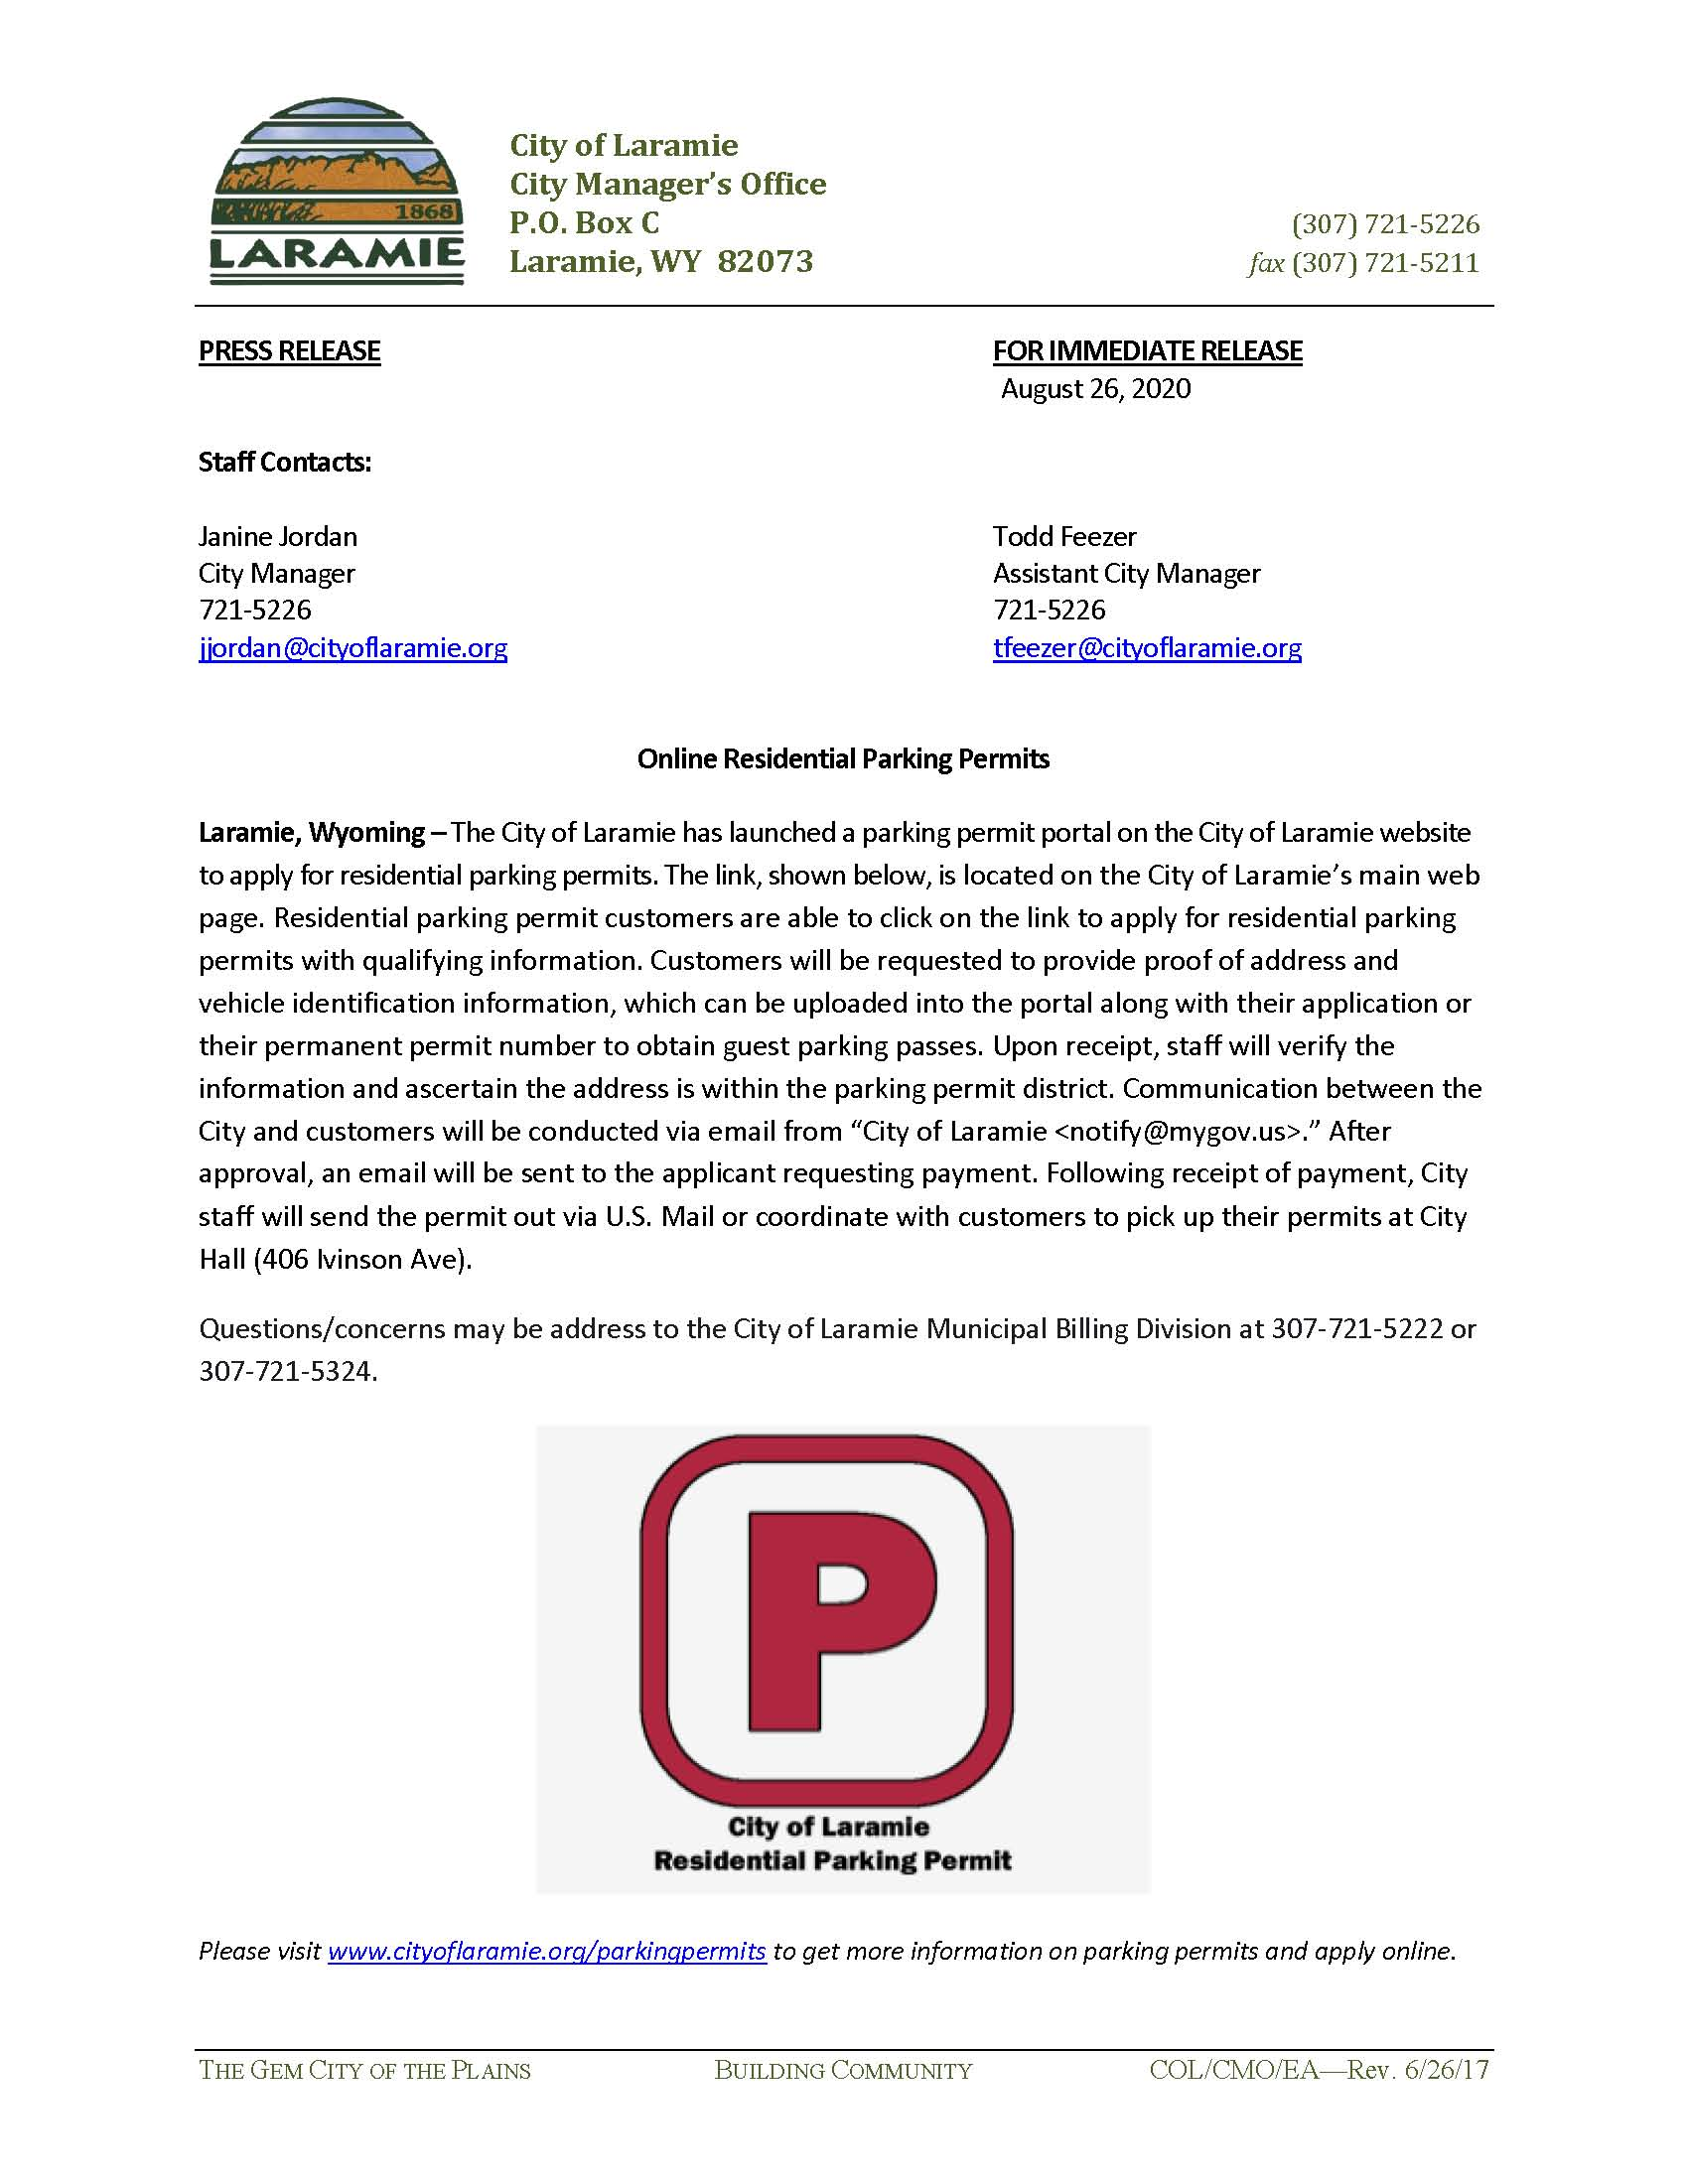 COL Residential Parking Permits--Press Release Aug 26, 2020